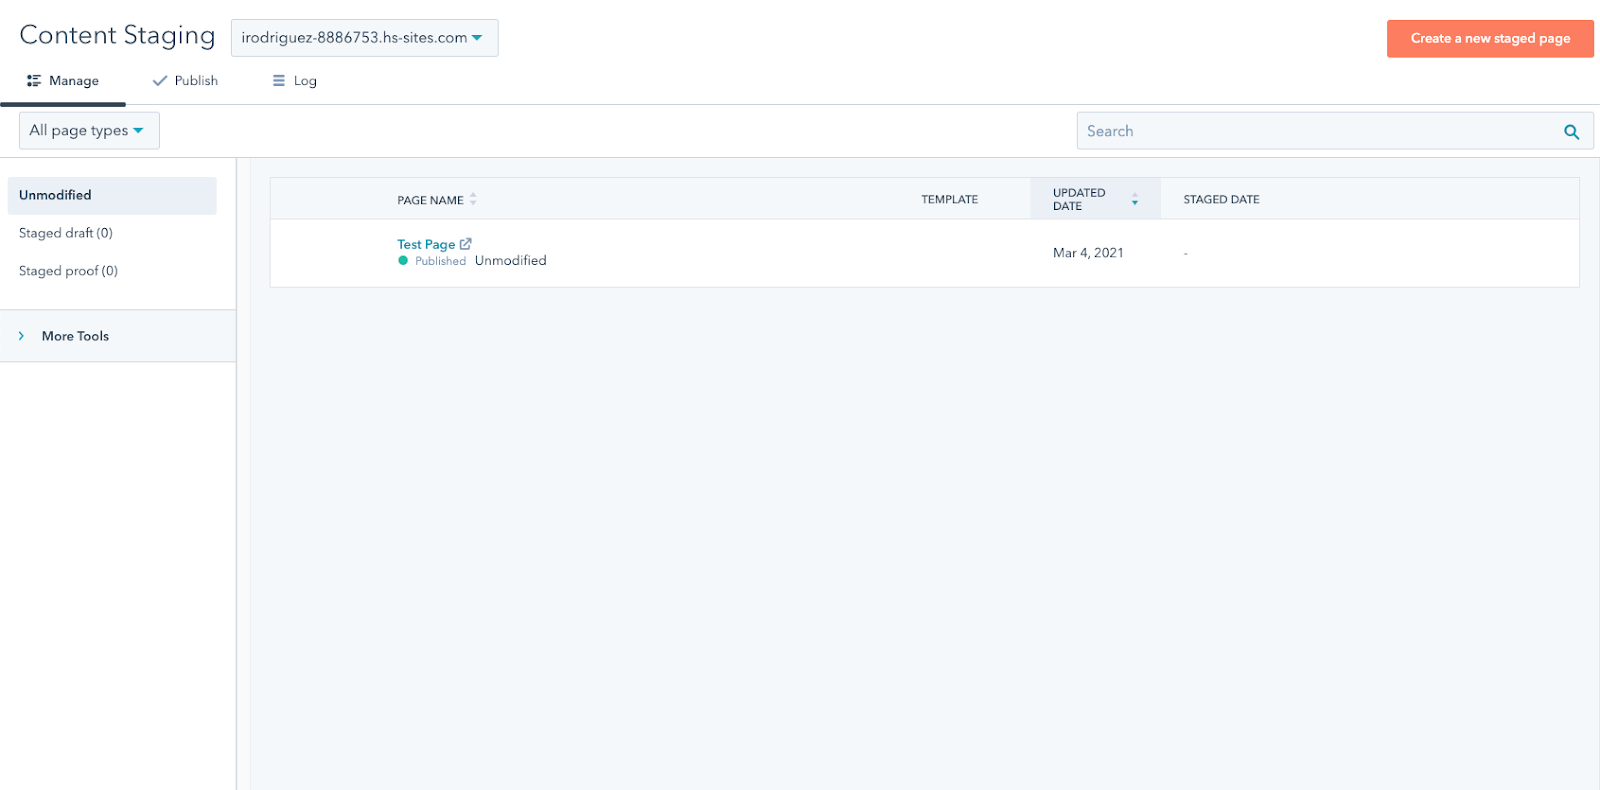 Content Staging dashboard in CMS Hub